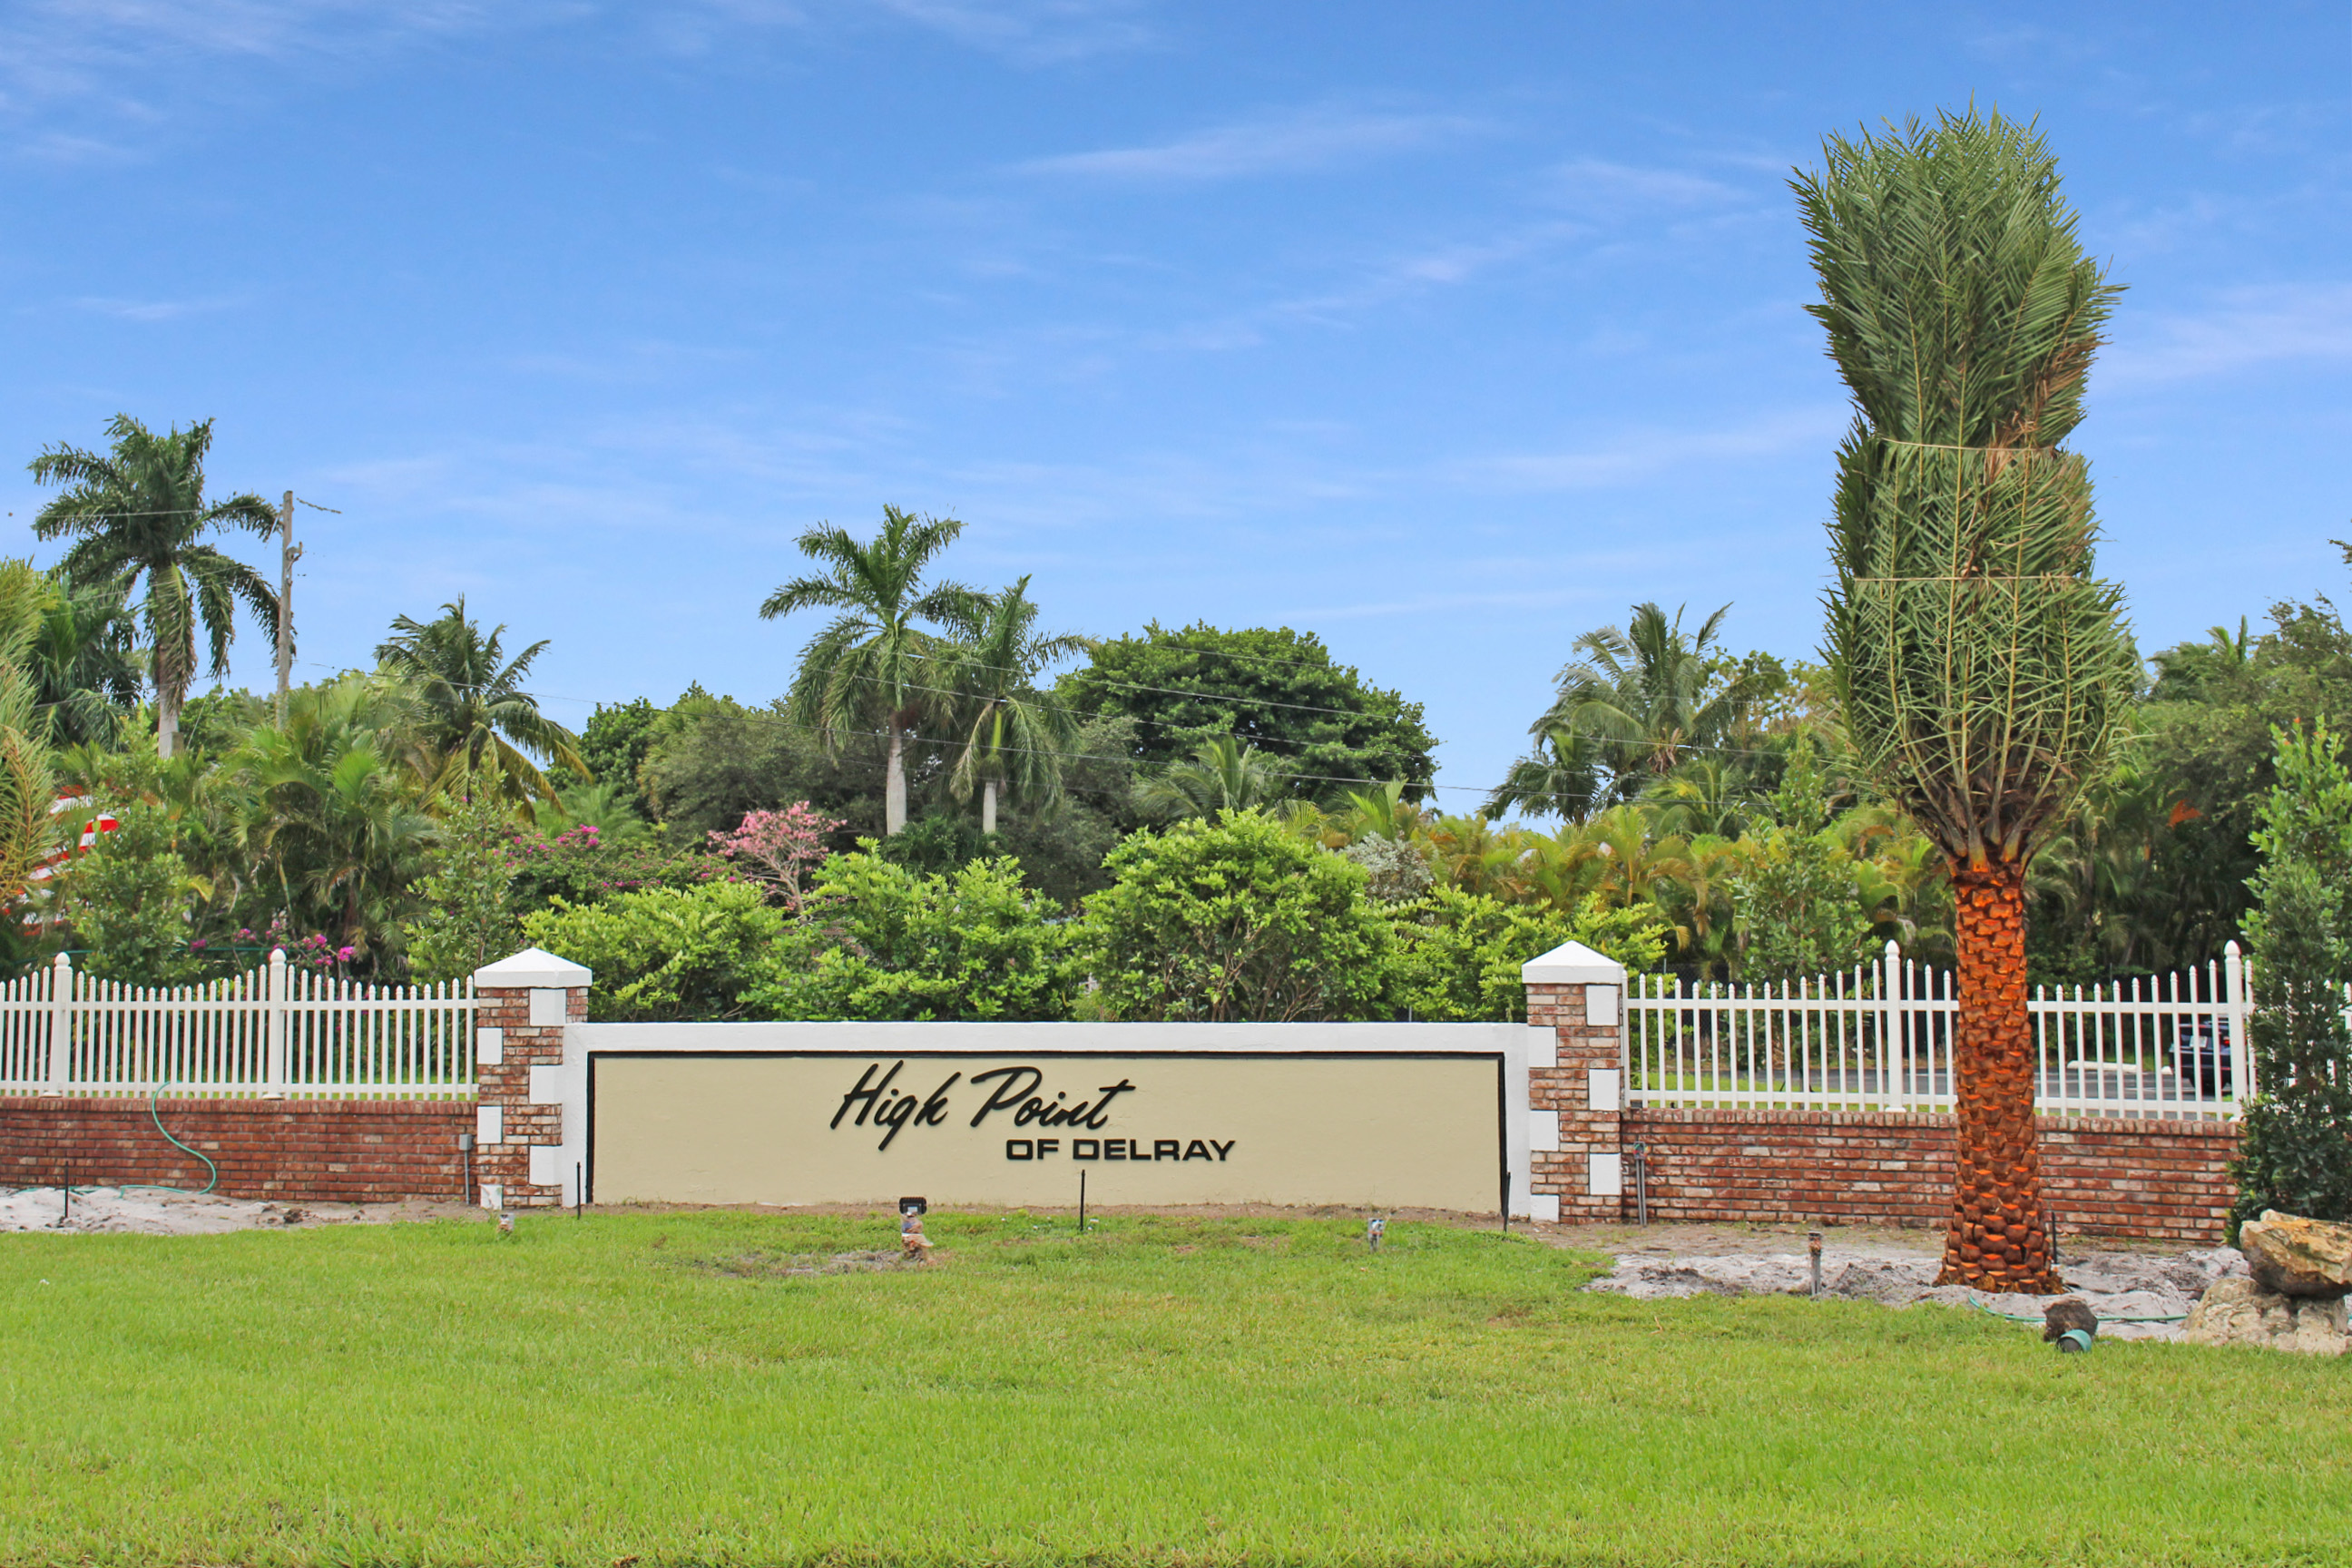 High Point of Delary Real Estate and Homes for Sale in High Point of Delray